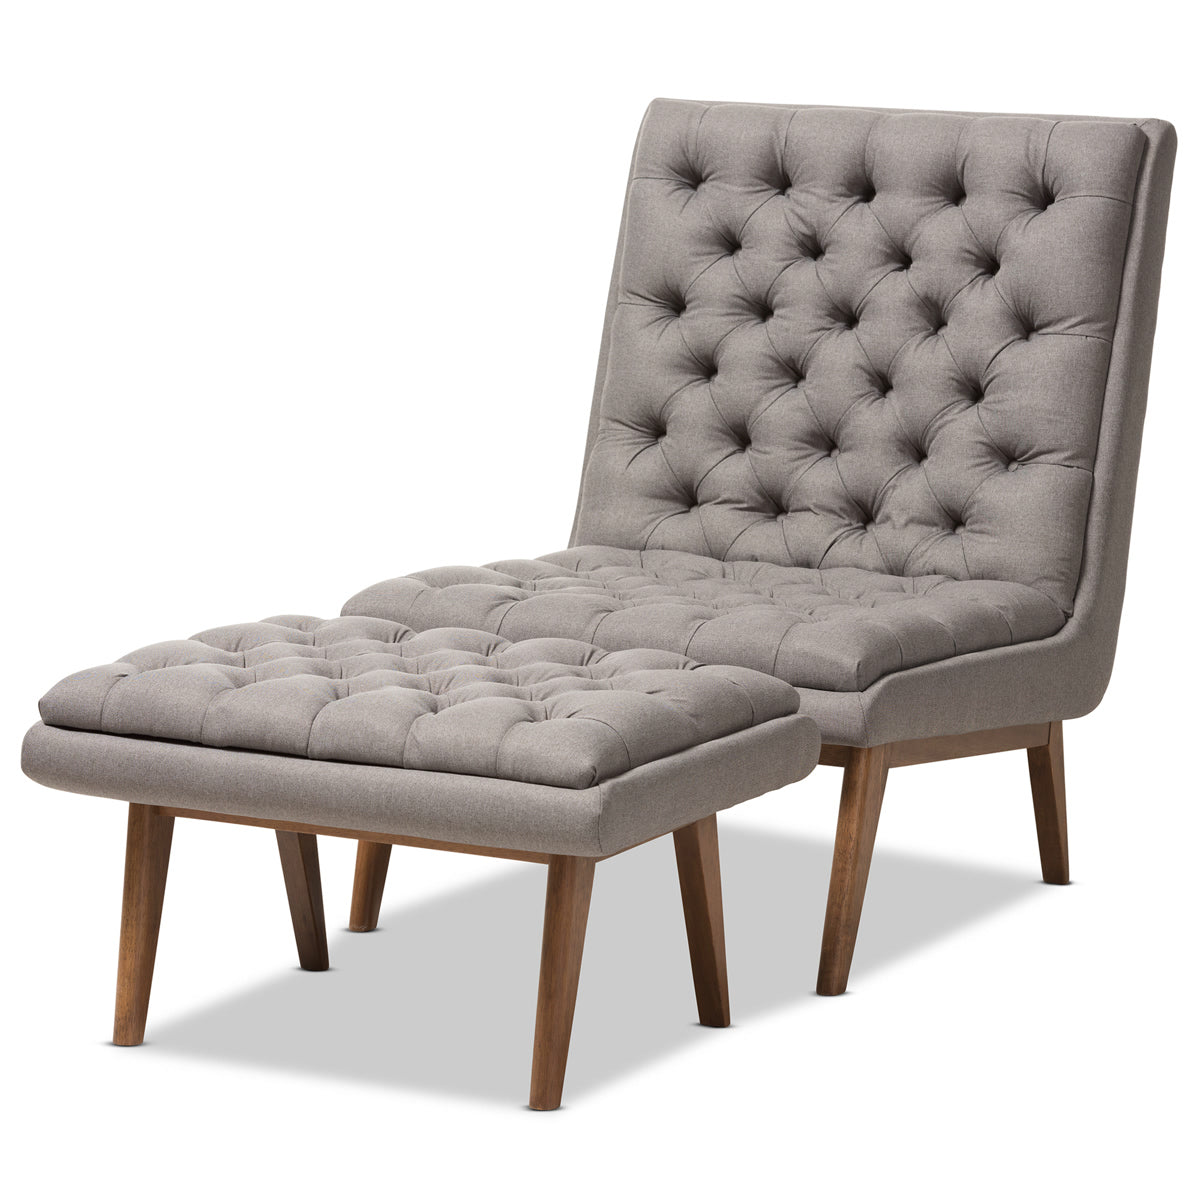 Baxton Studio Annetha Mid-Century Modern Grey Fabric Upholstered Walnut Finished Wood Chair And Ottoman Set Baxton Studio-0-Minimal And Modern - 1